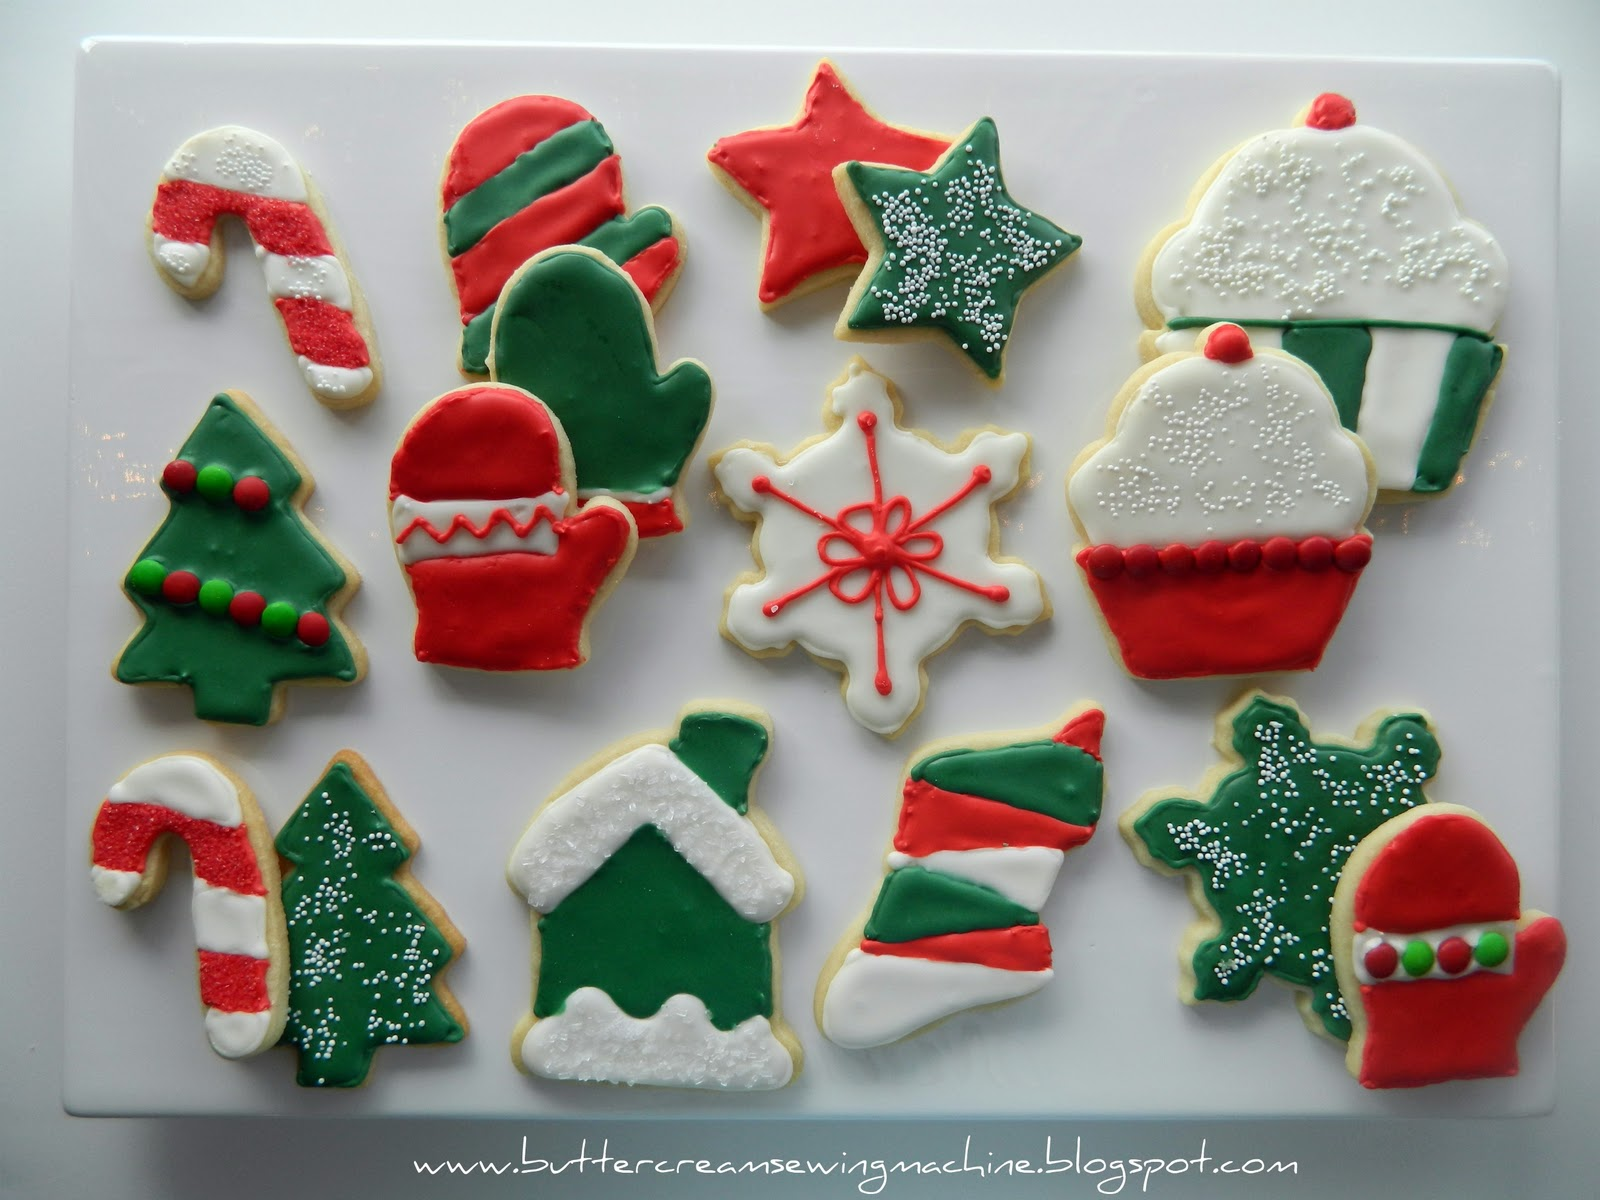 ChristmasCookies2. wm_christmas_cookiedecorating3 & Video Decorating Christmas Cookies | Ideas Christmas Decorating